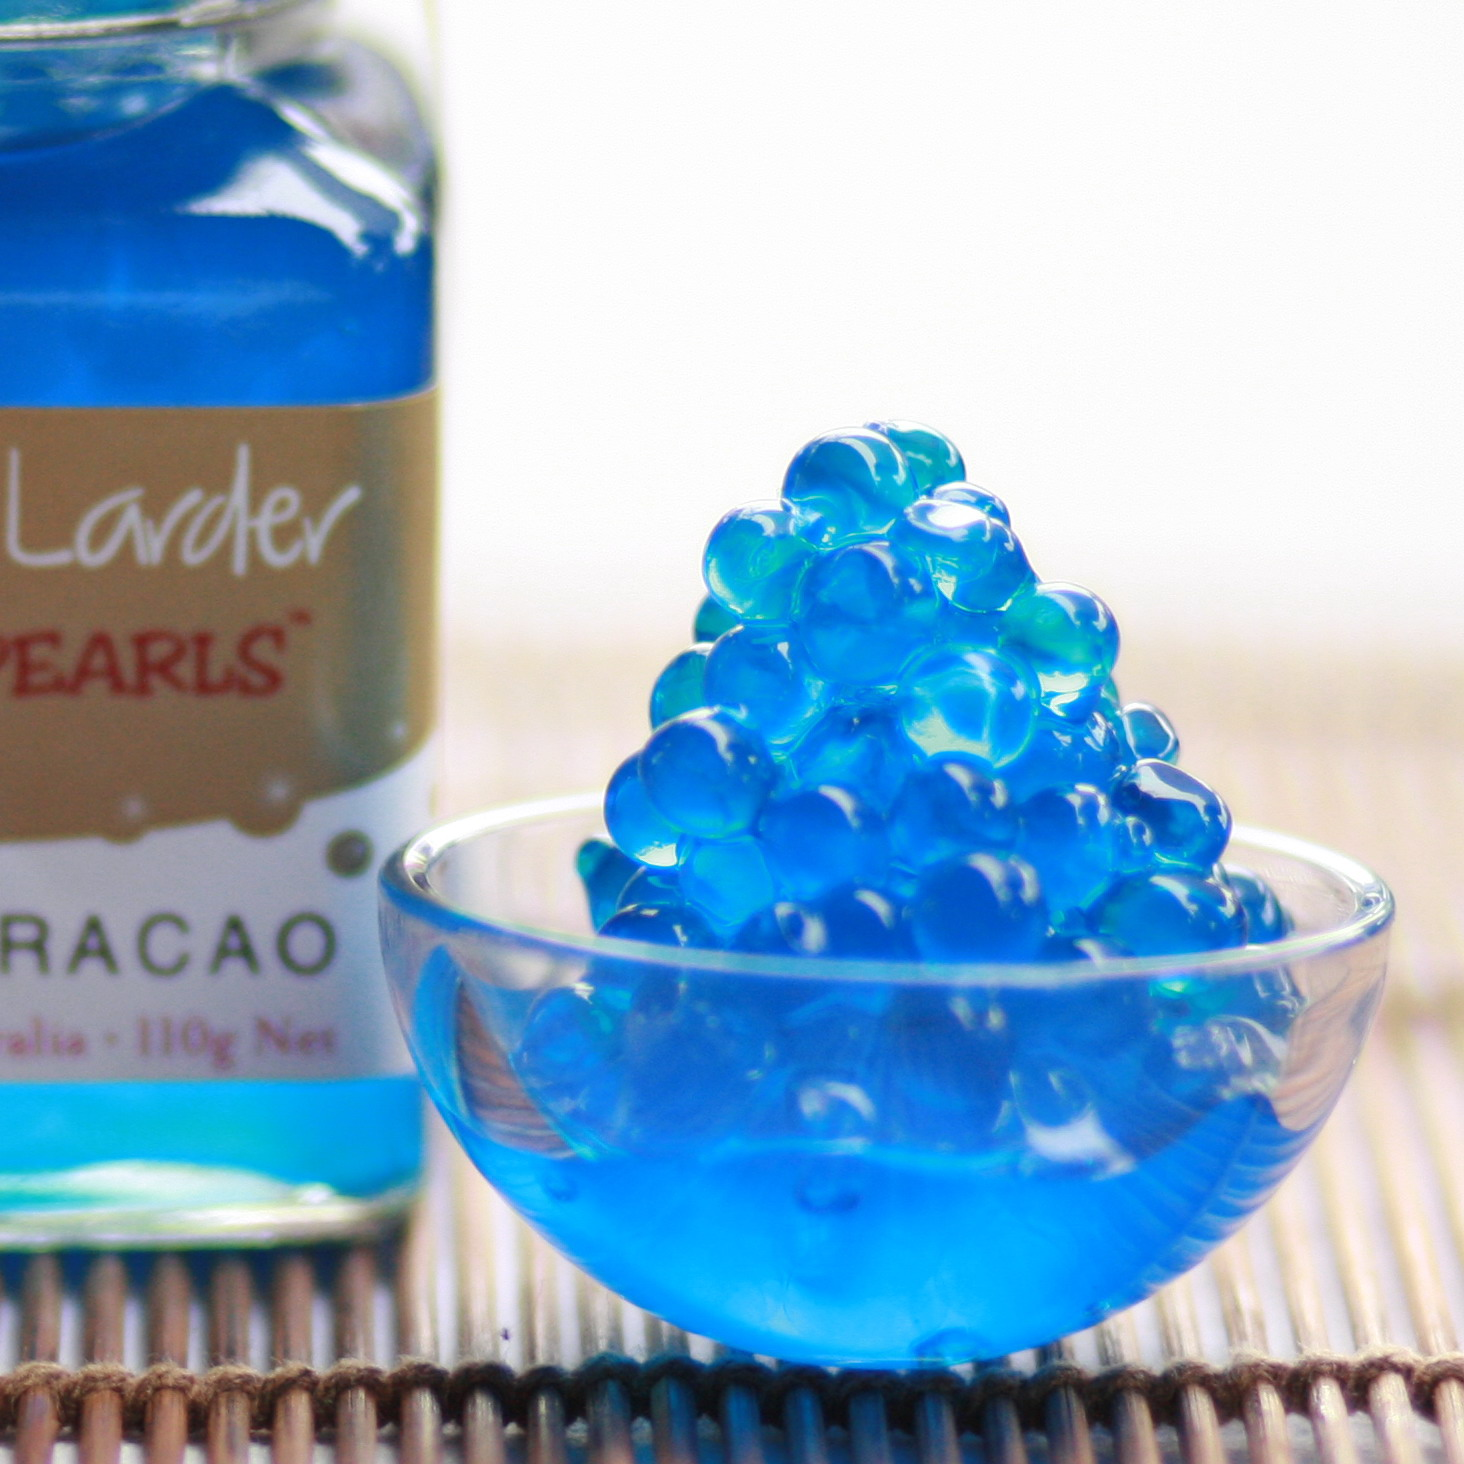 Peninsula Larders Blue Curacao style Flavour Pearls are fun and delicious for your favourite drinks